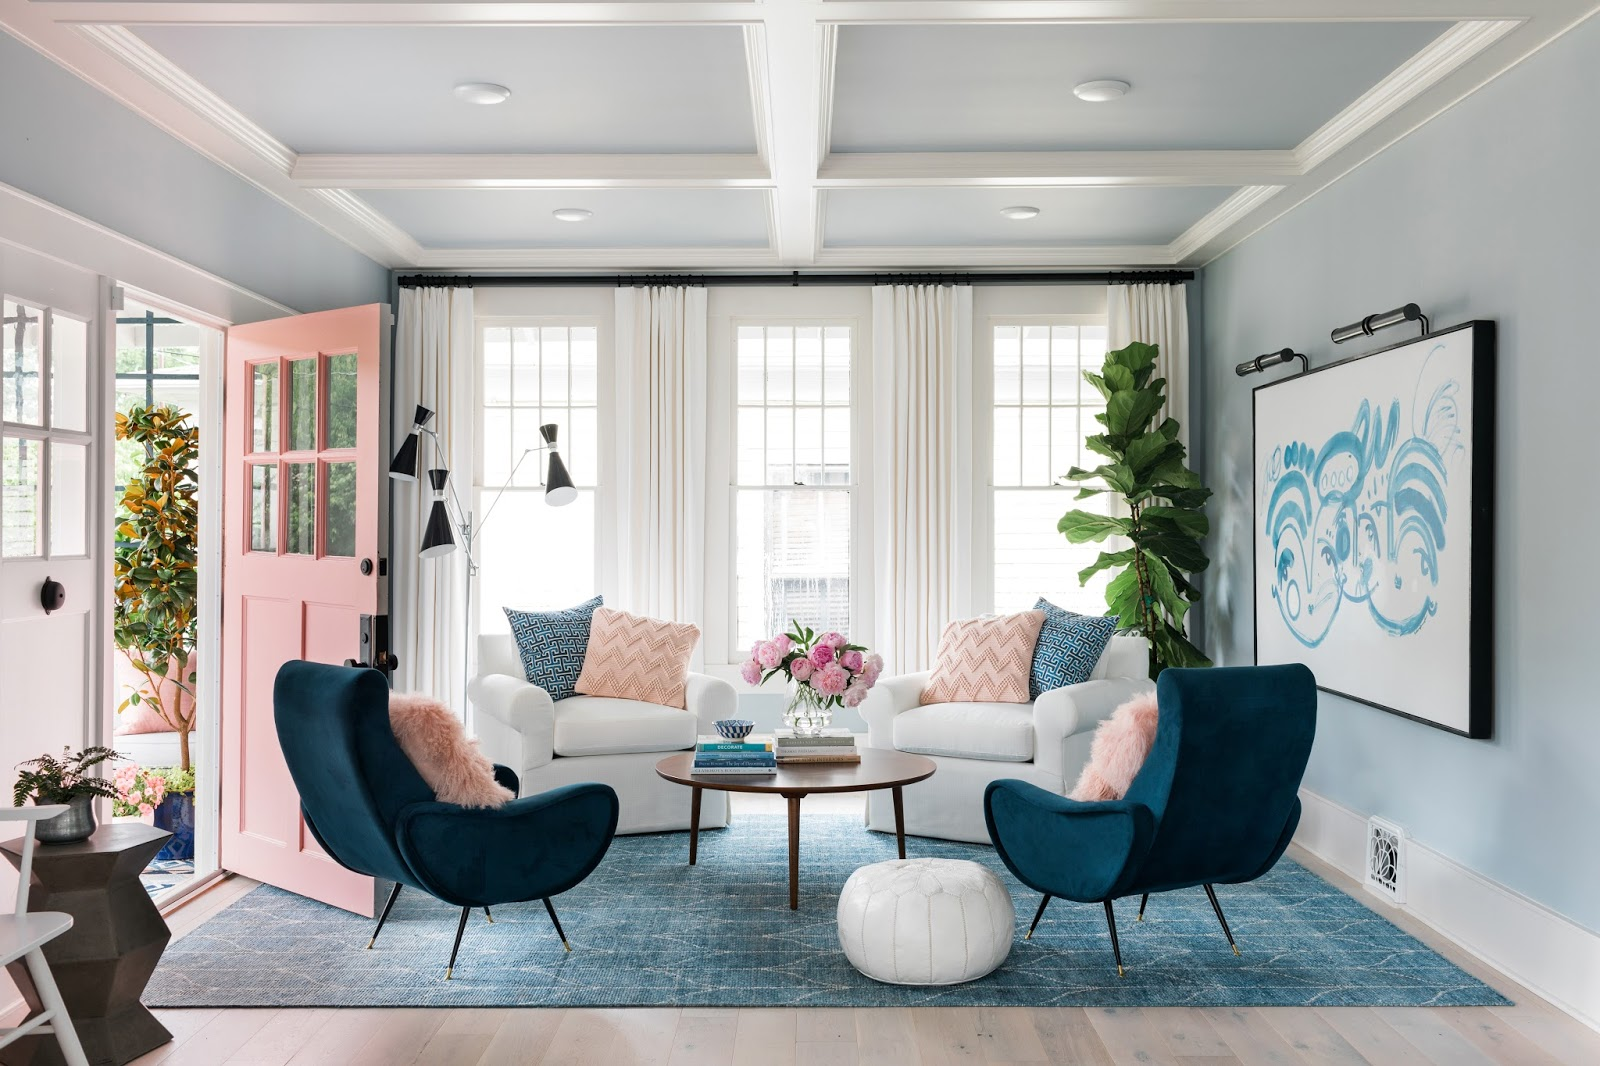 HGTV's Urban Oasis 2017 in Knoxville, TN | Southern Belle ...